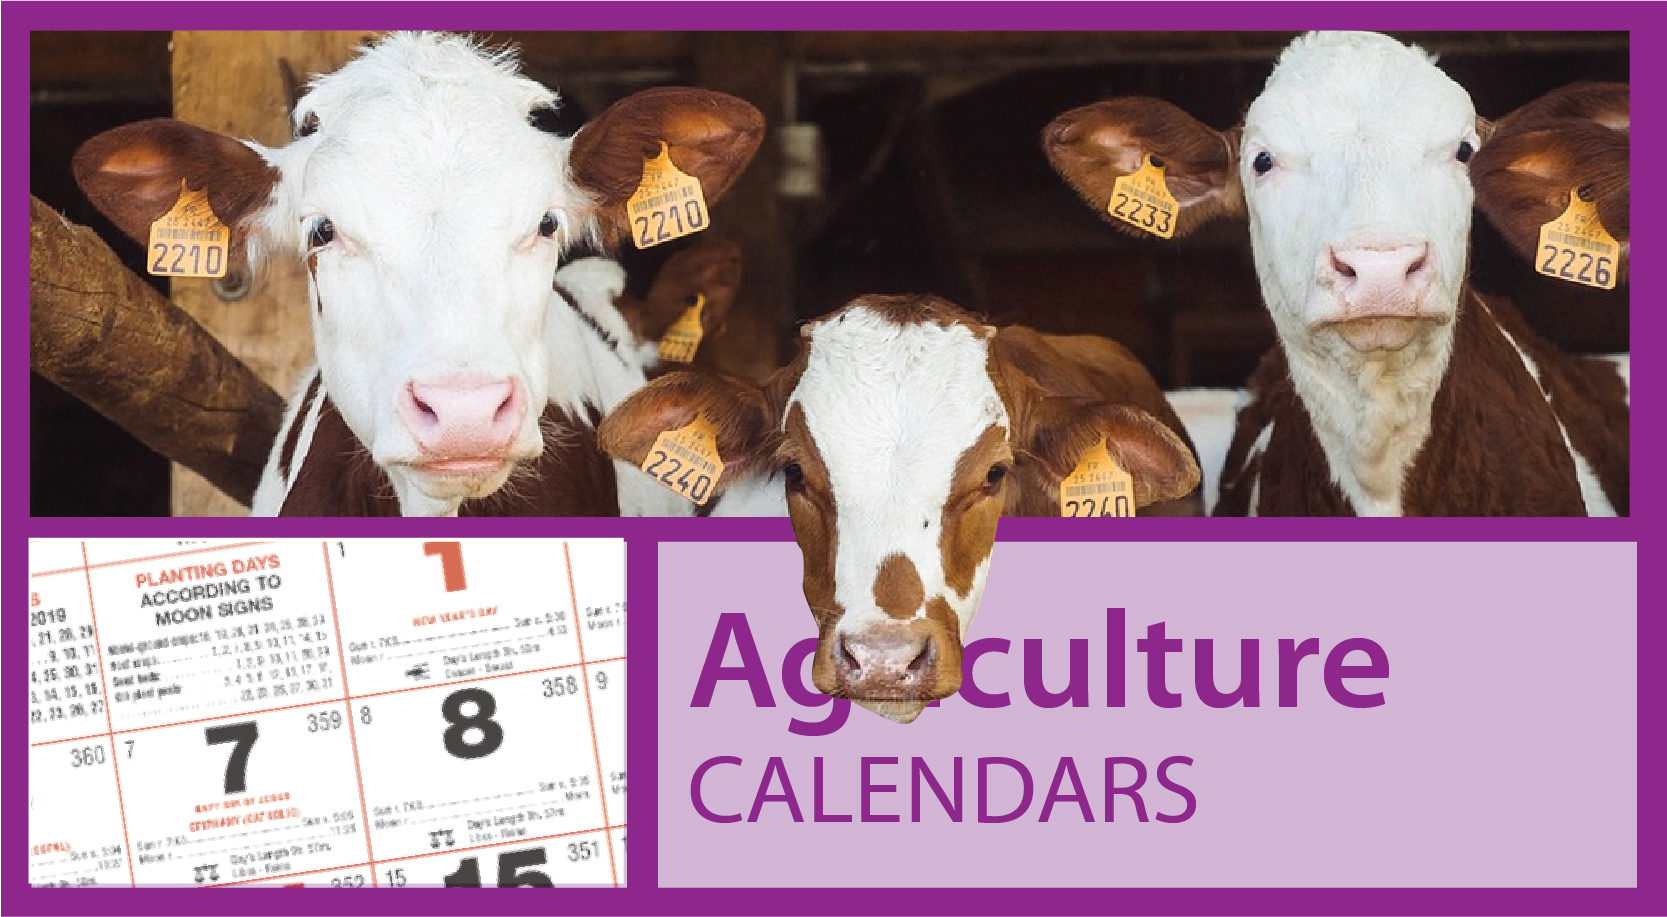 Promotional Agriculture Calendars https://www.valuecalendars.com/products/standard_imprinted_calendars/promotional_agriculture_calendars